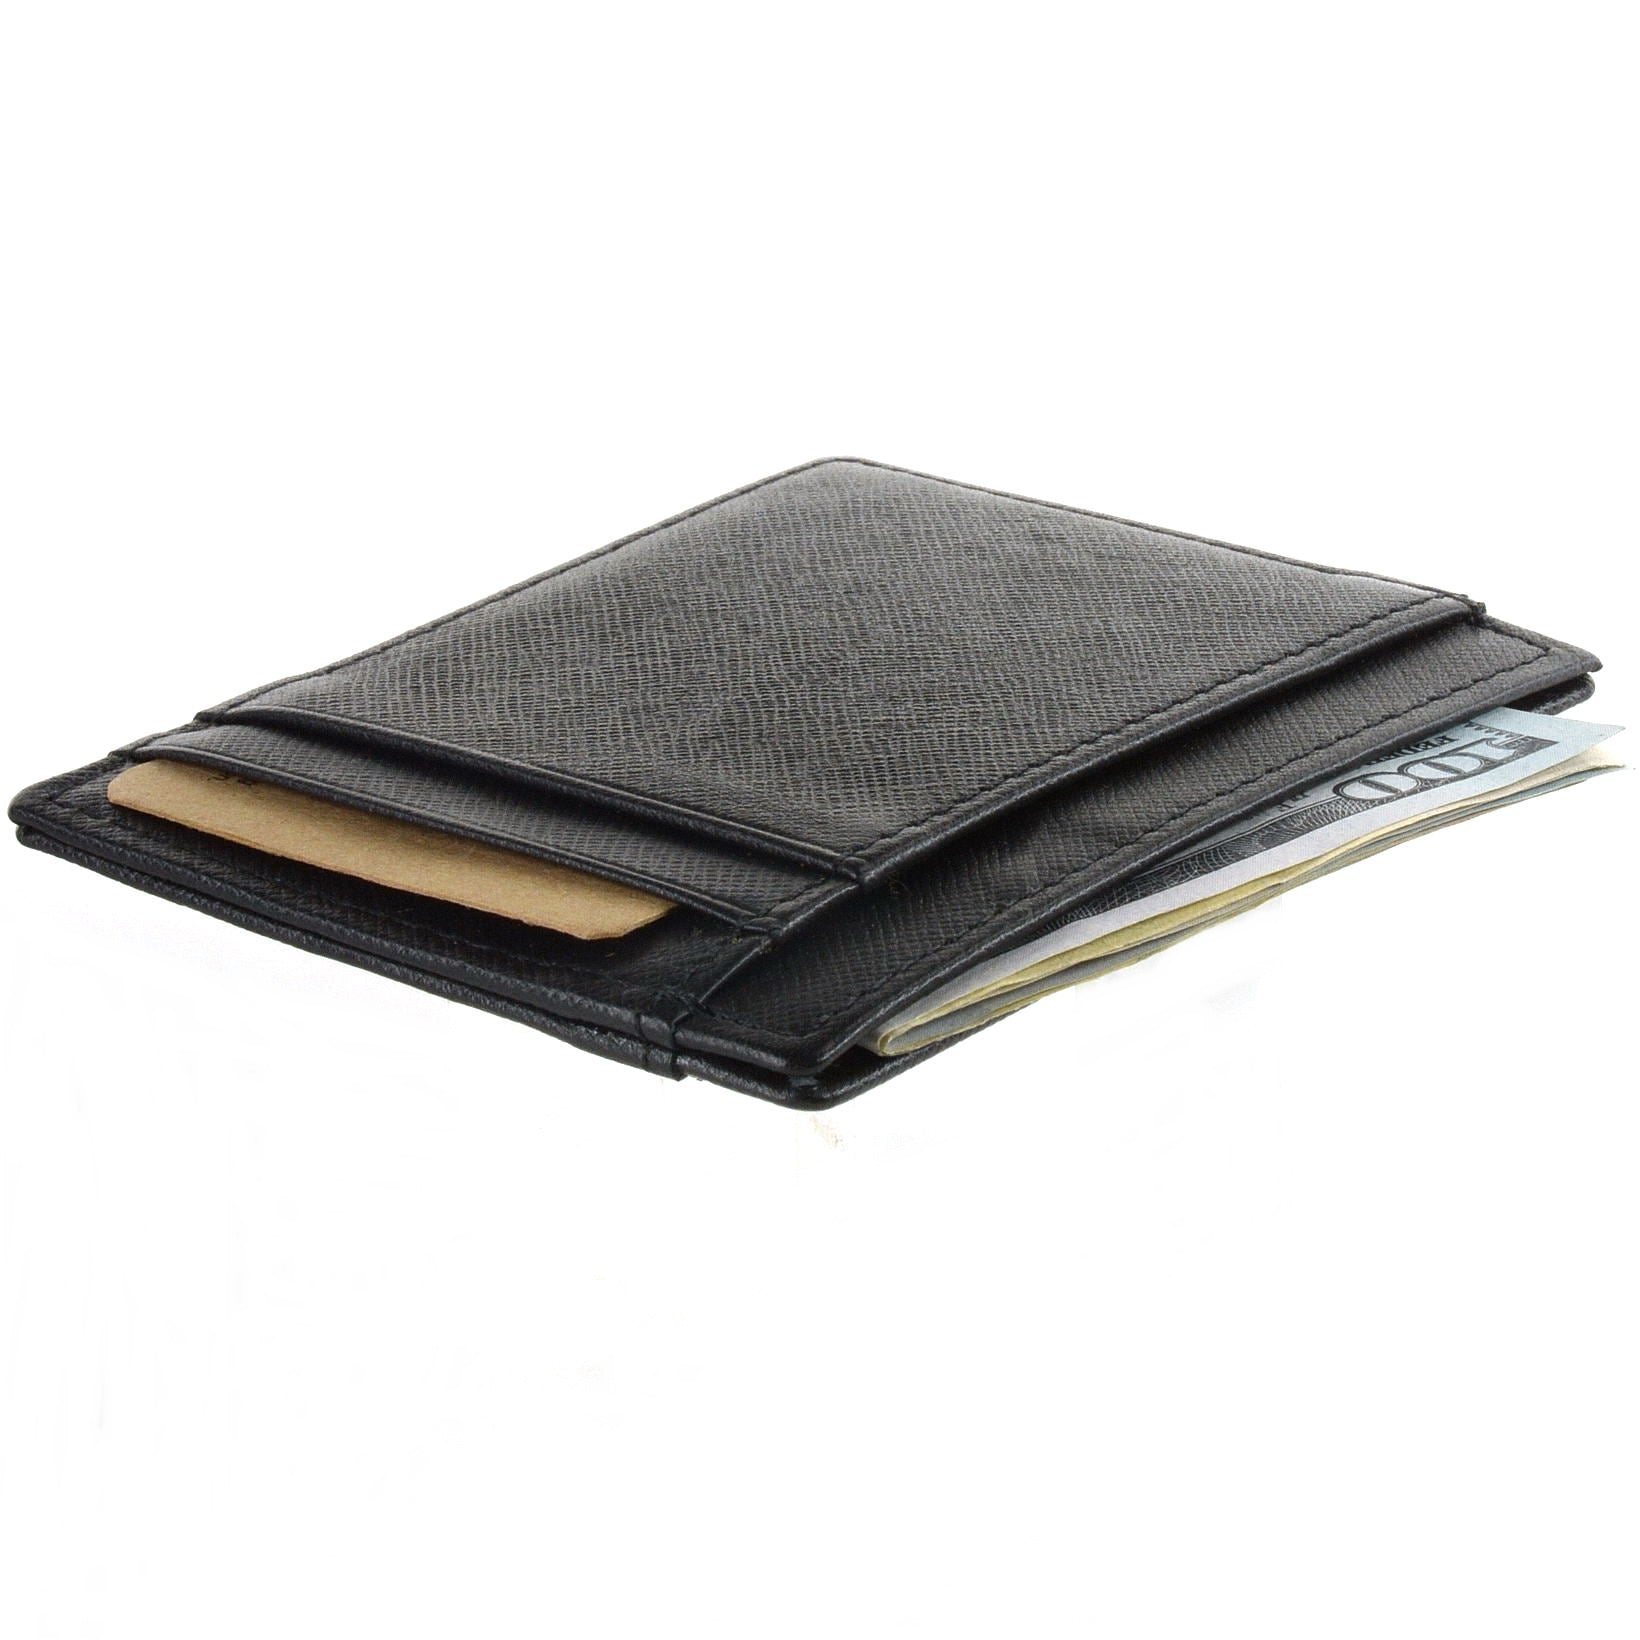 RFID Blocking Minimalist Front Pocket Wallet Card Case - Genuine Leather